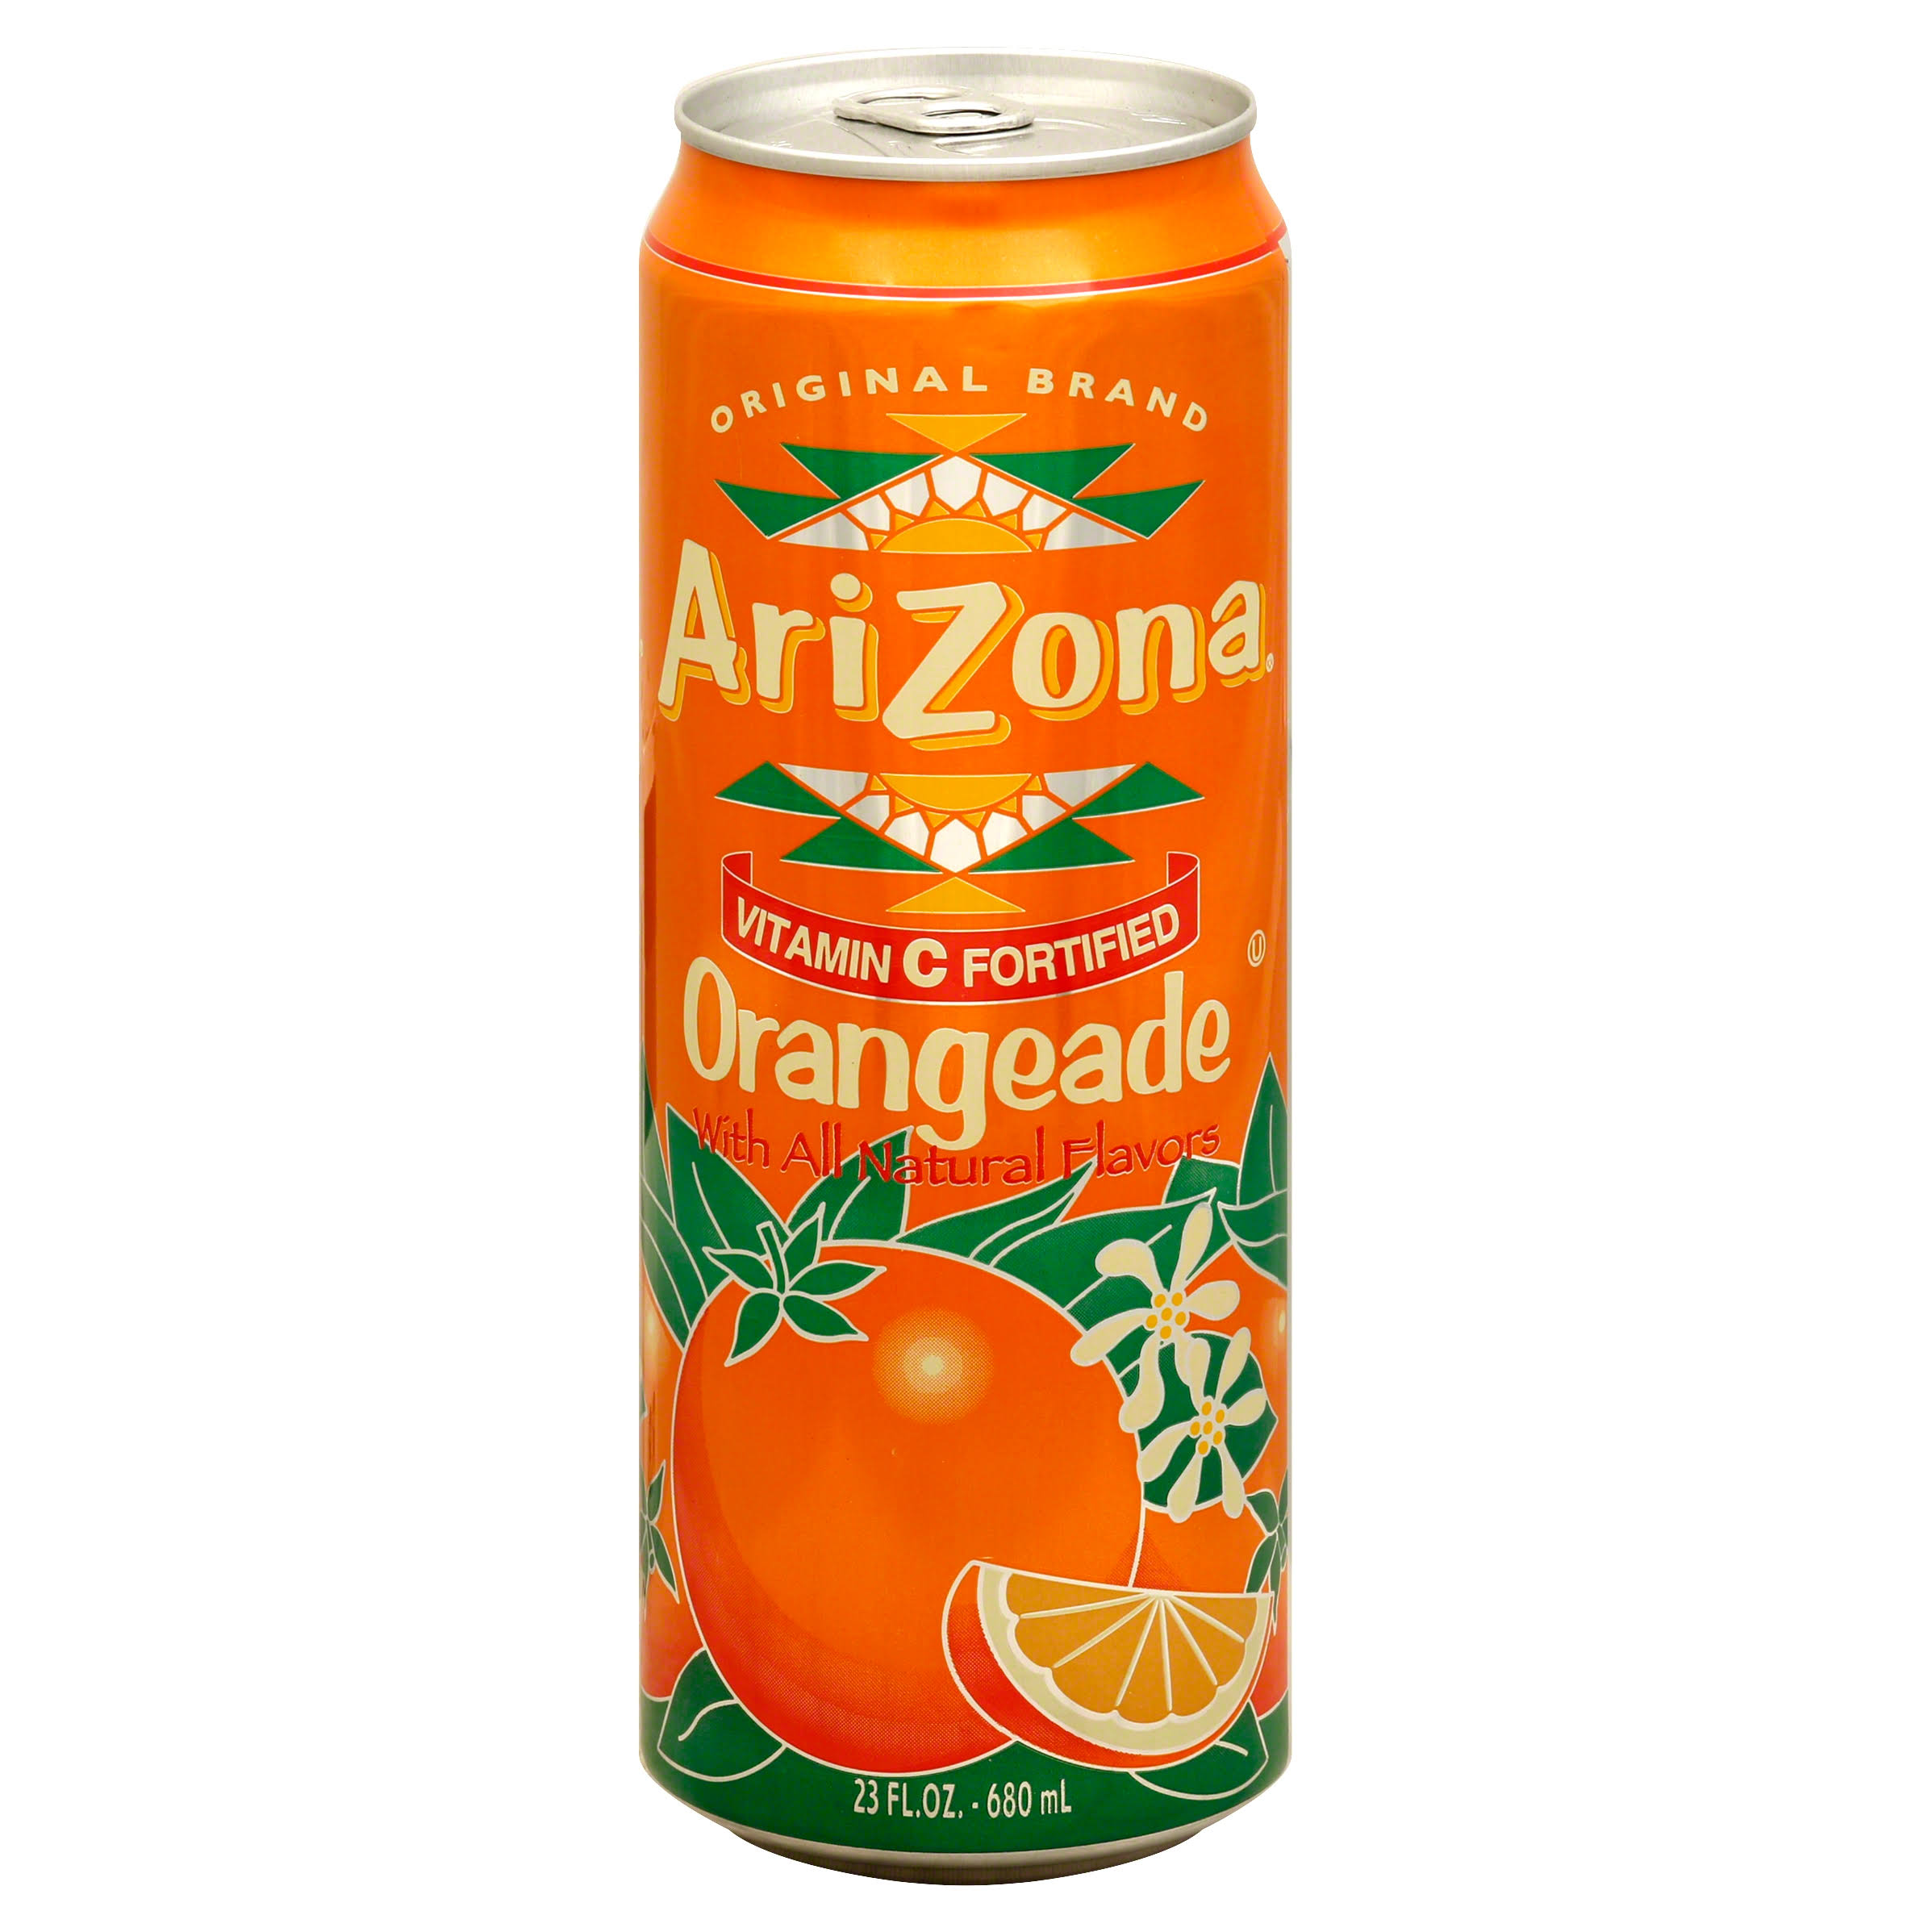 Arizona - Orangeade, 680ml